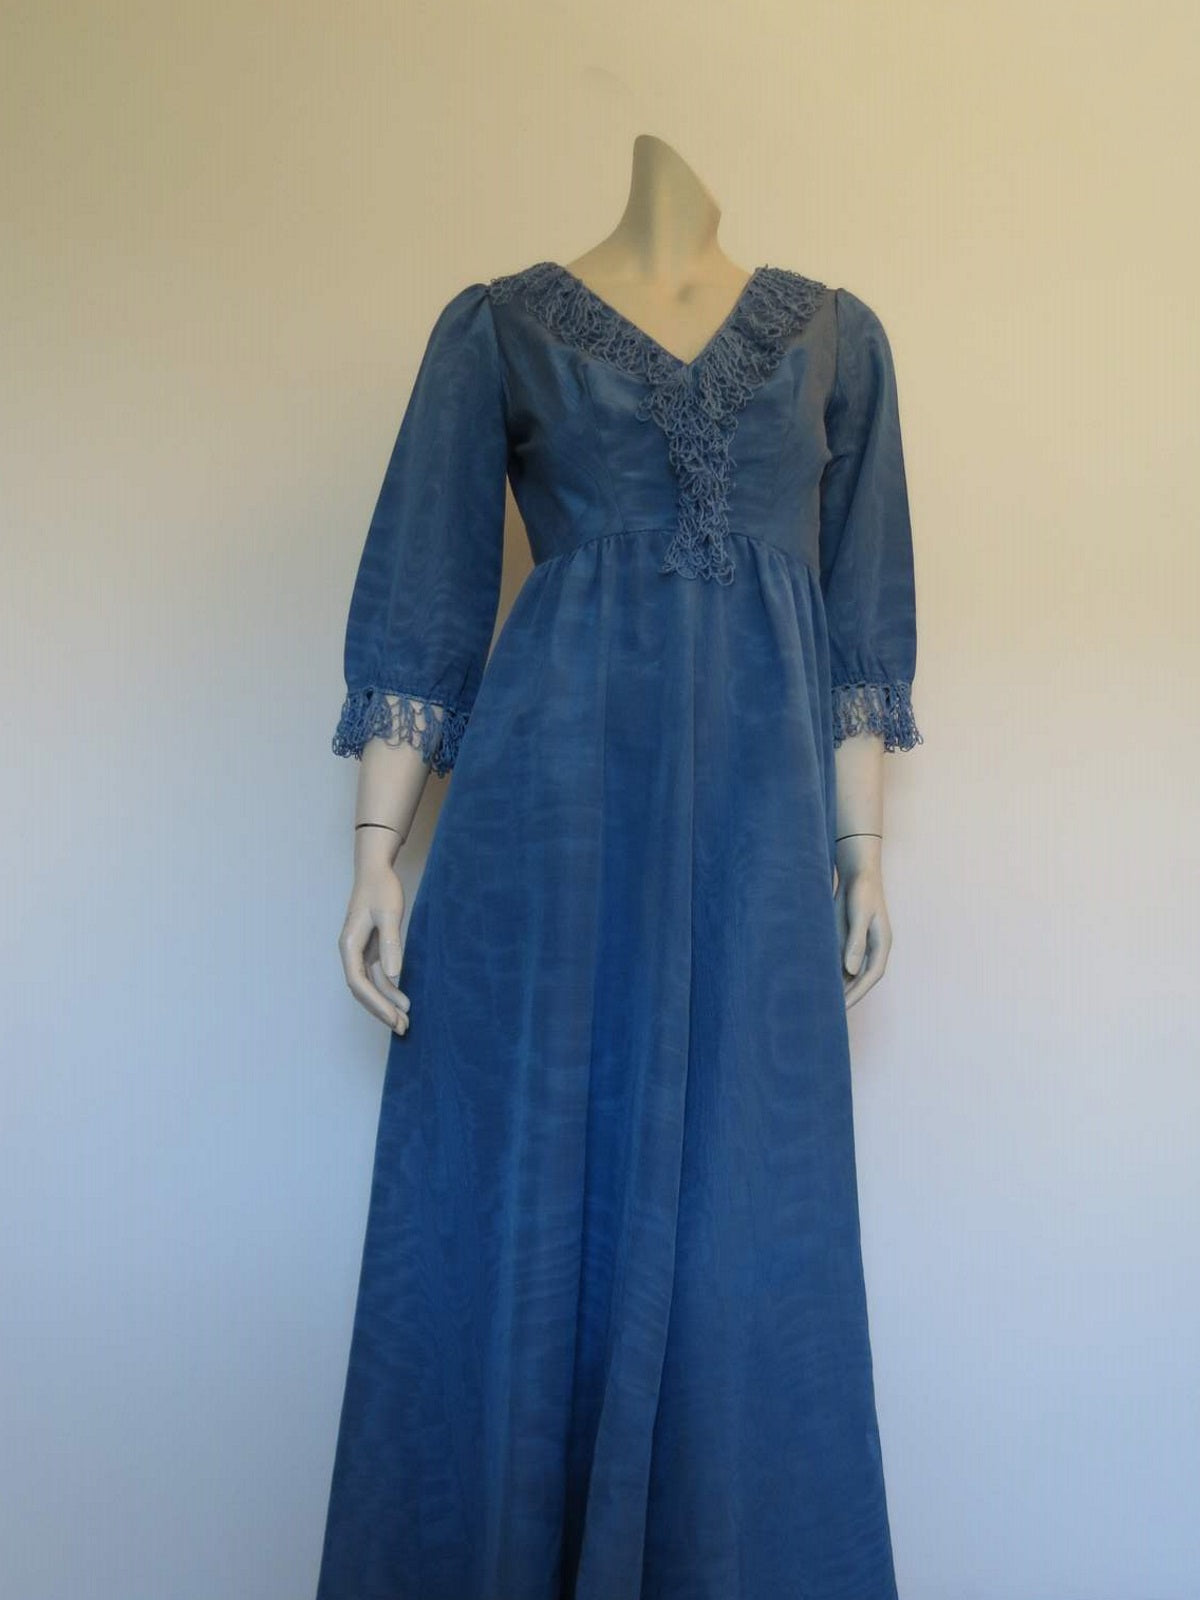 blue watered silk moire grosgrain evening dress long sleeves crochet trim vintage 1960s 1970s